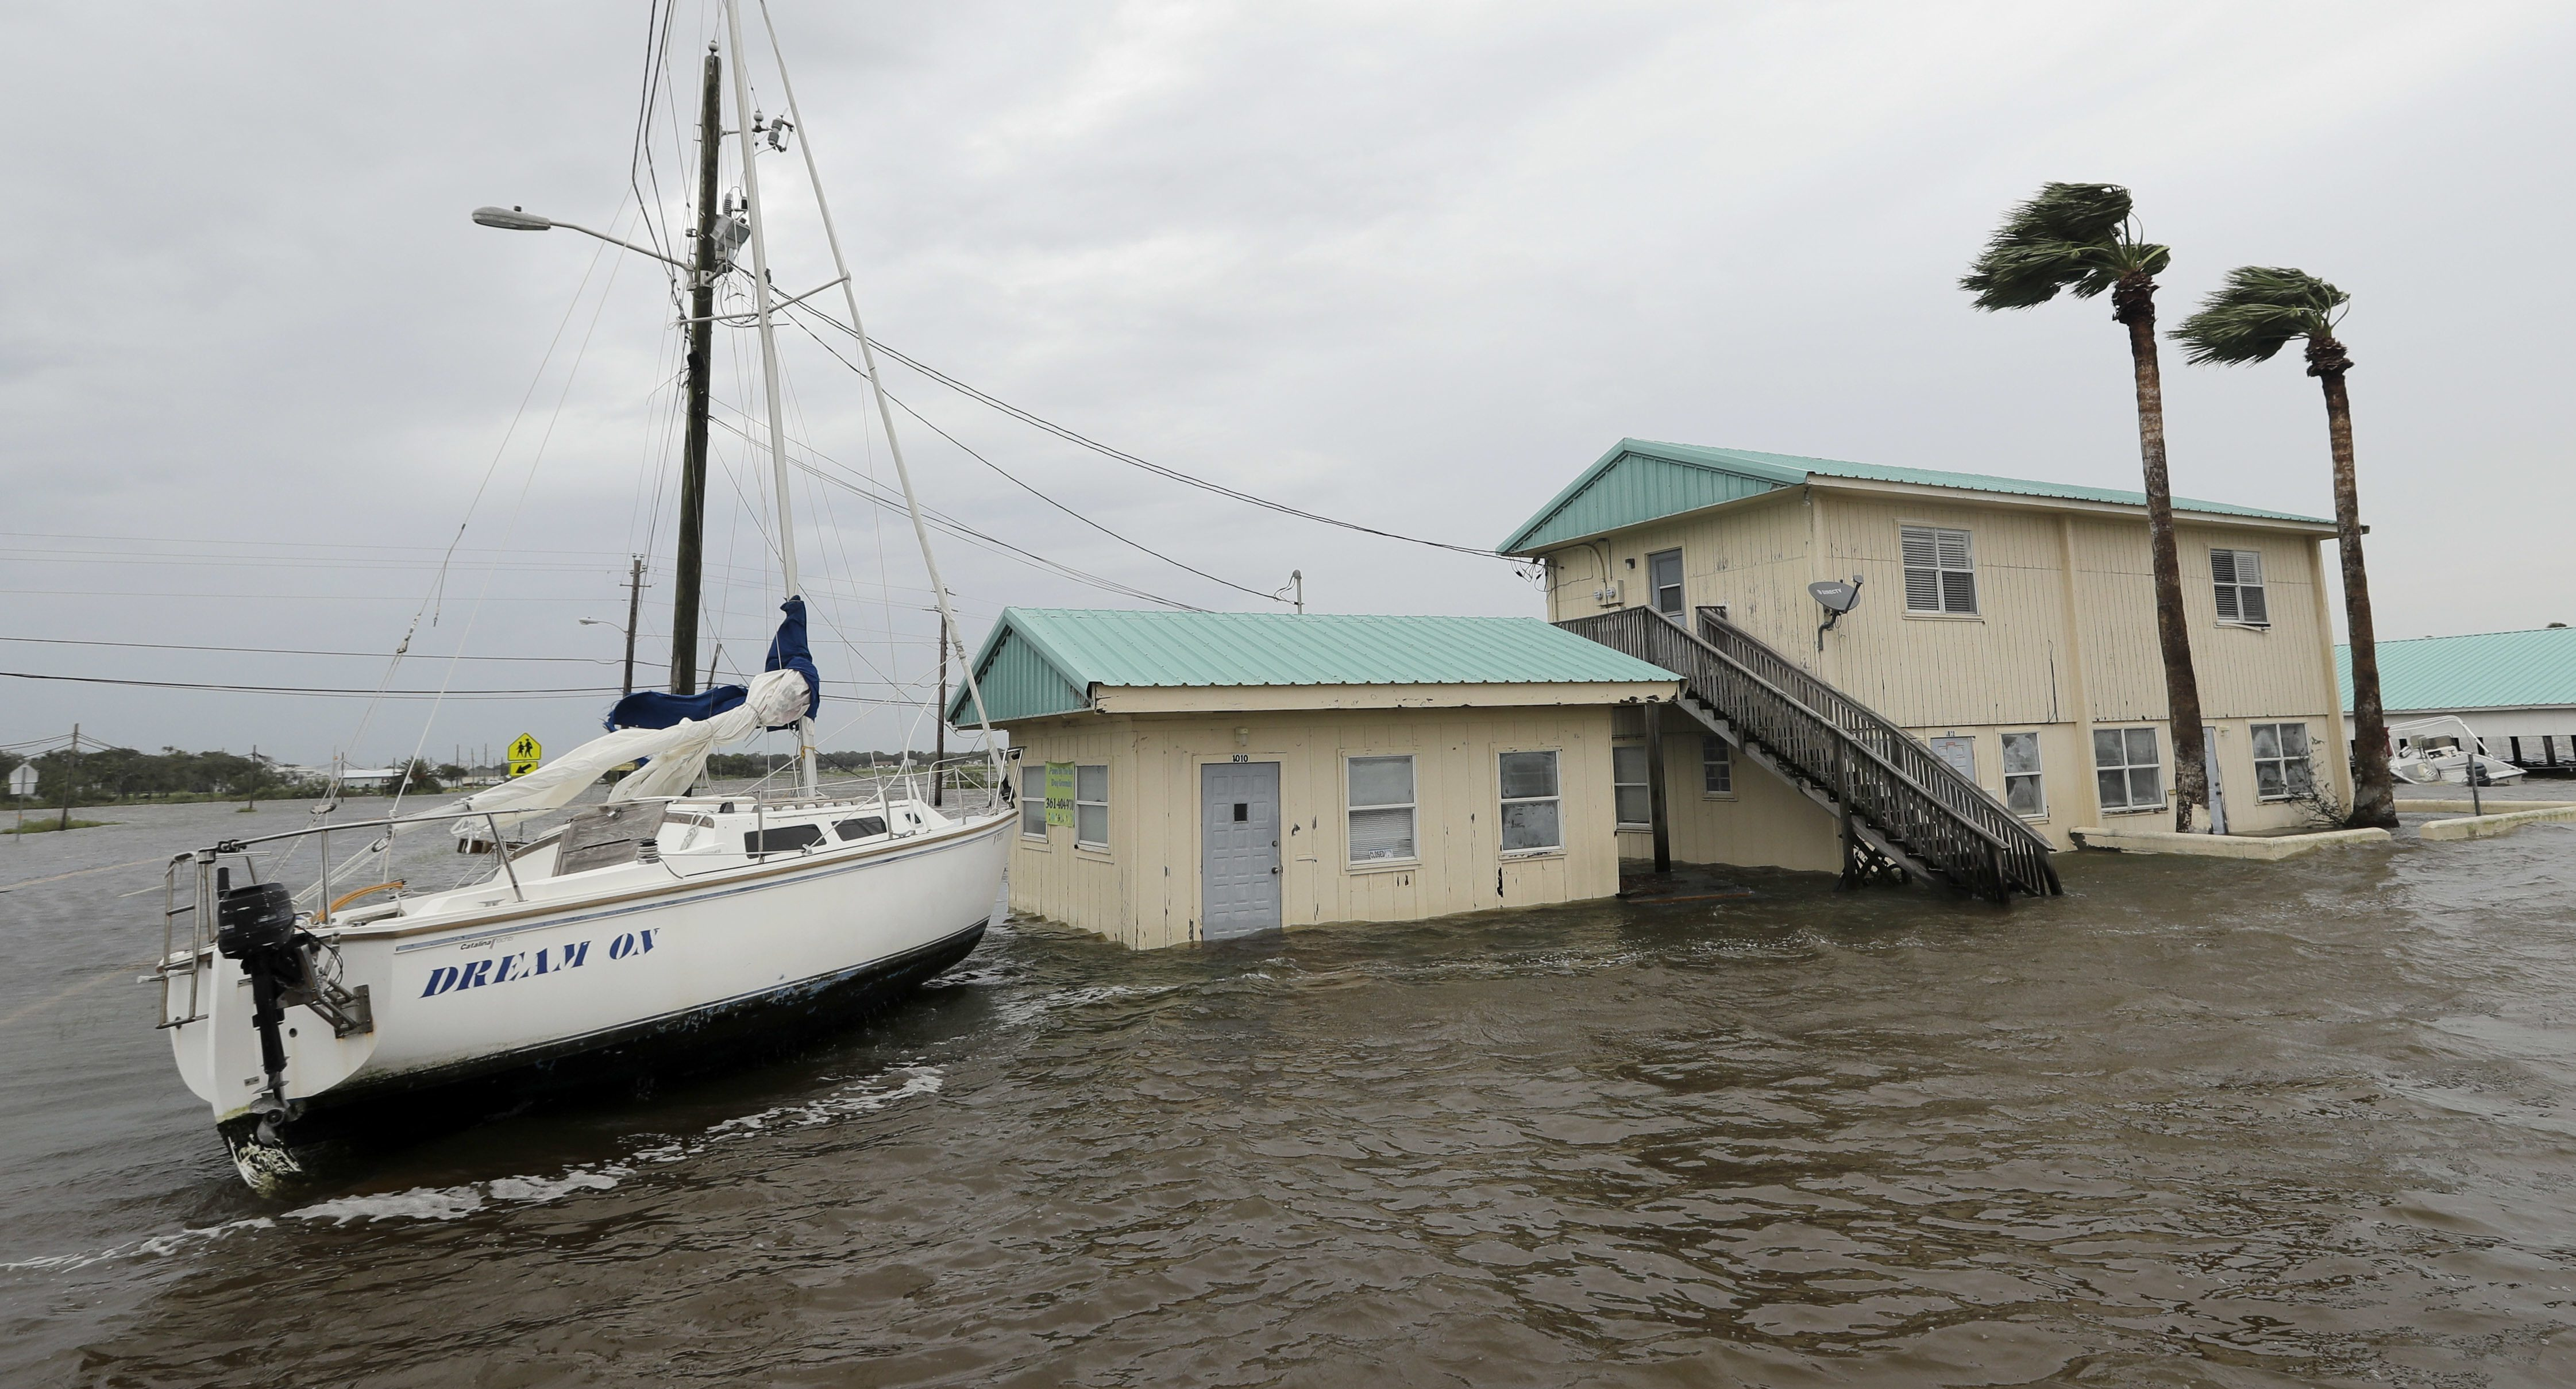 A sailboat sits in floodwaters next to a dog grooming business in the aftermath of Hurricane Harvey Saturday, Aug. 26, 2017, in Palacios, Texas. (AP Photo/David J. Phillip)